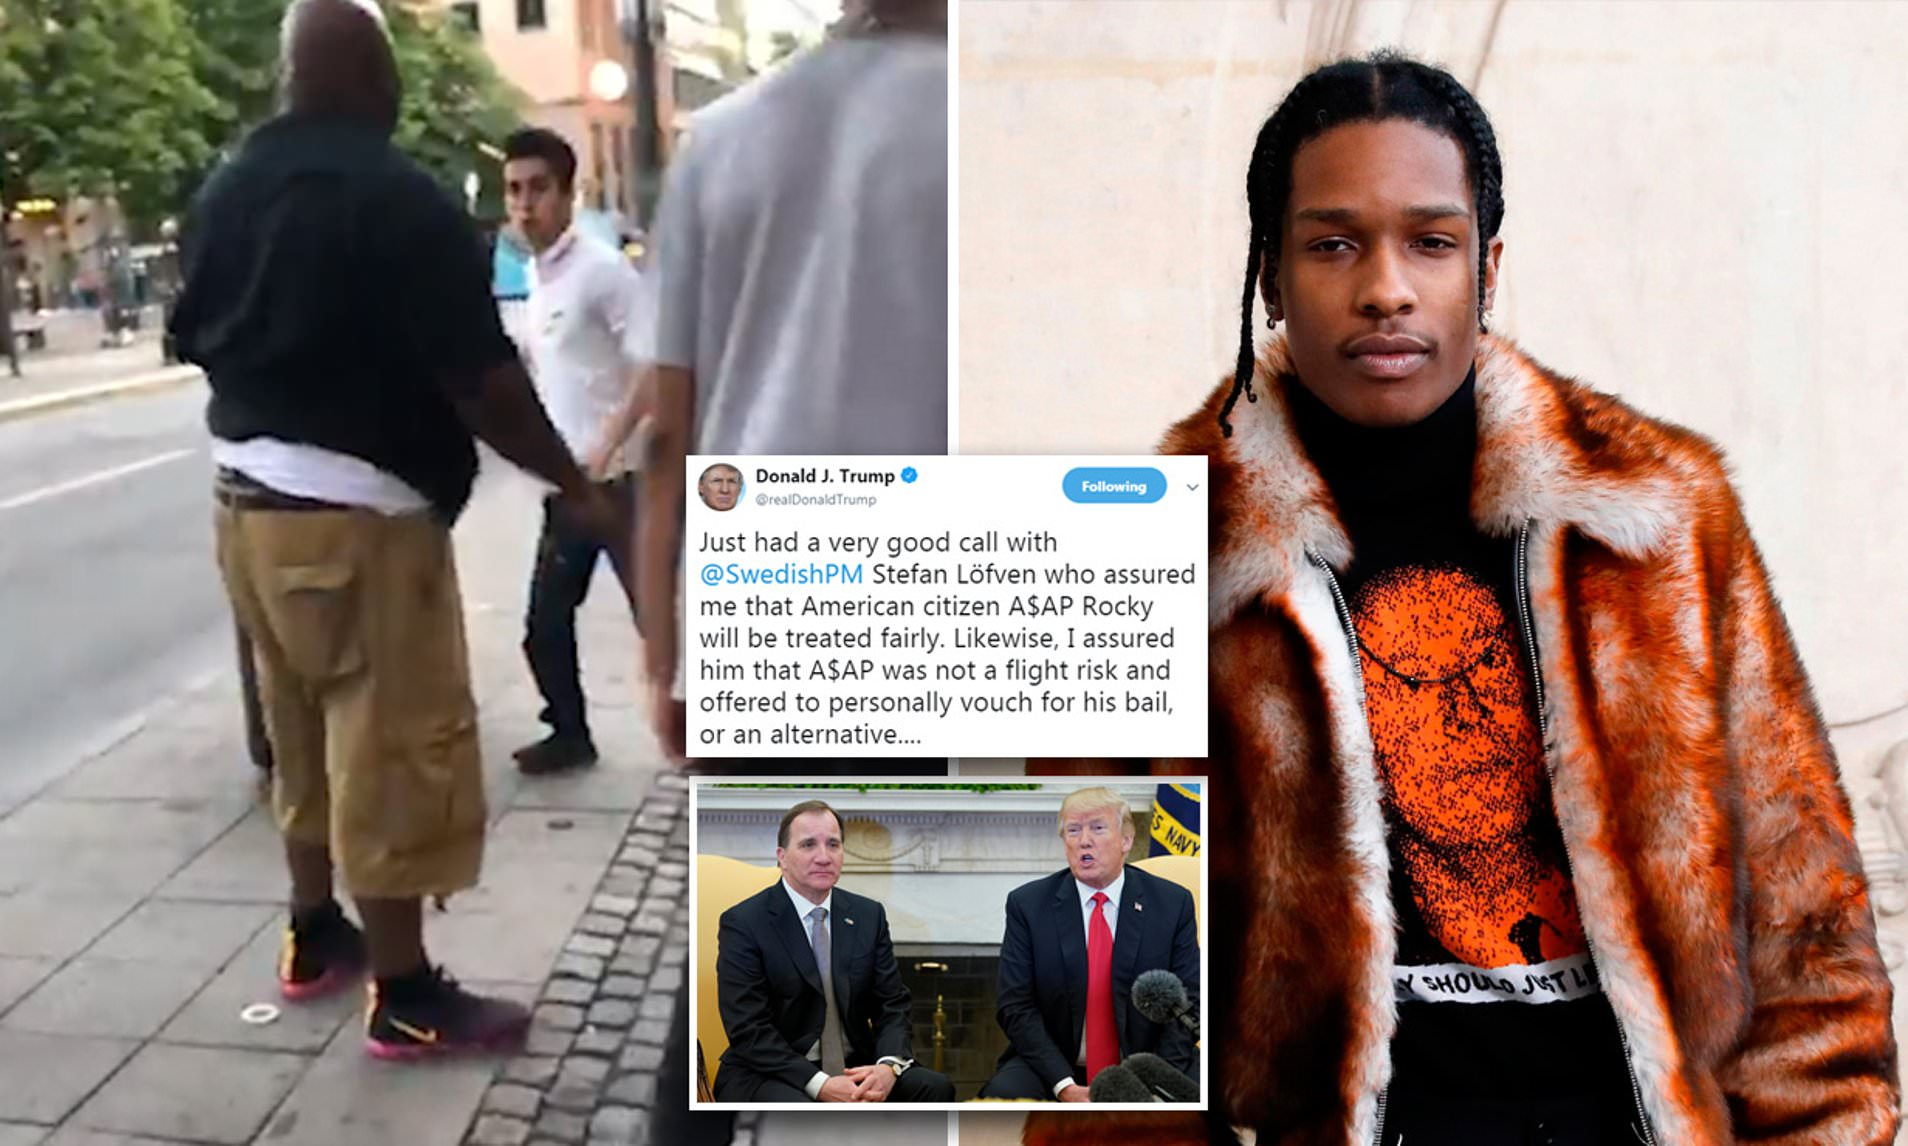 A$AP Rocky's rescue mission is now lead by Donald Trump